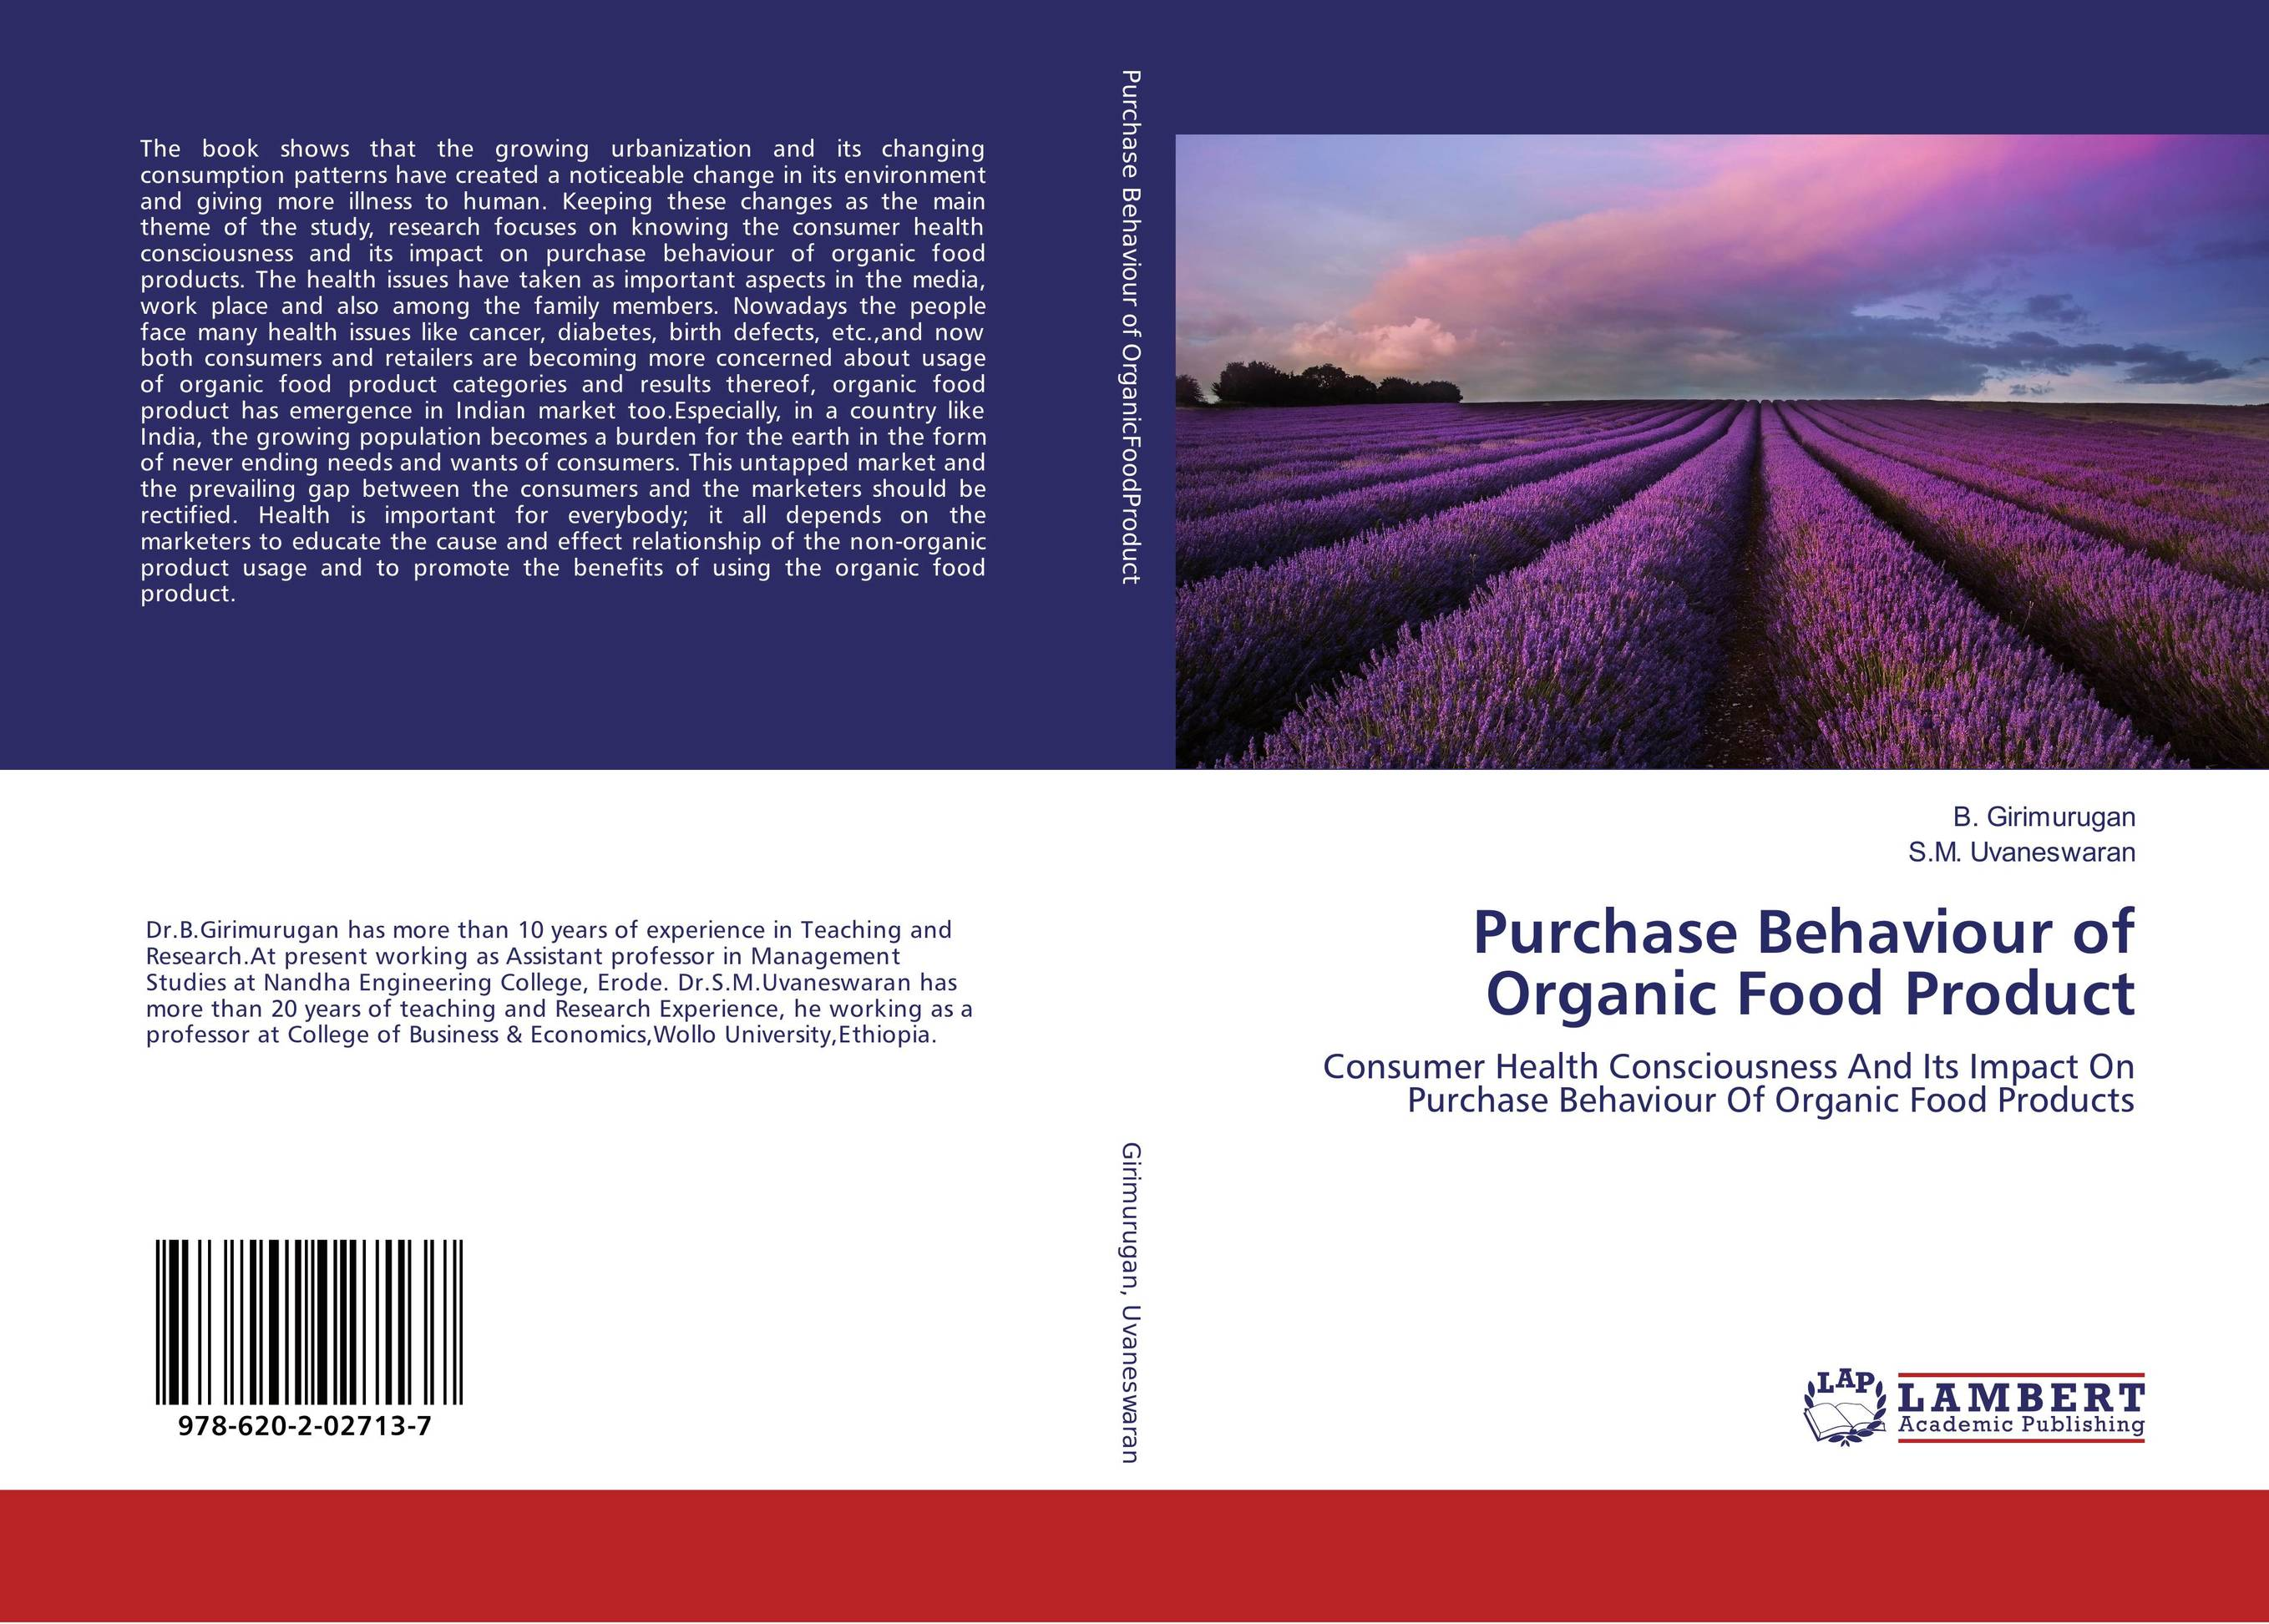 organic milk attitudes and consumption patterns Consumers evaluate organic yogurt as superior compared with conventional yogurt on healthiness, environmental friendliness, quality, and safety a structural equations model reveals the positive association between knowledge, attitudes, and the frequency of purchasing and consuming.